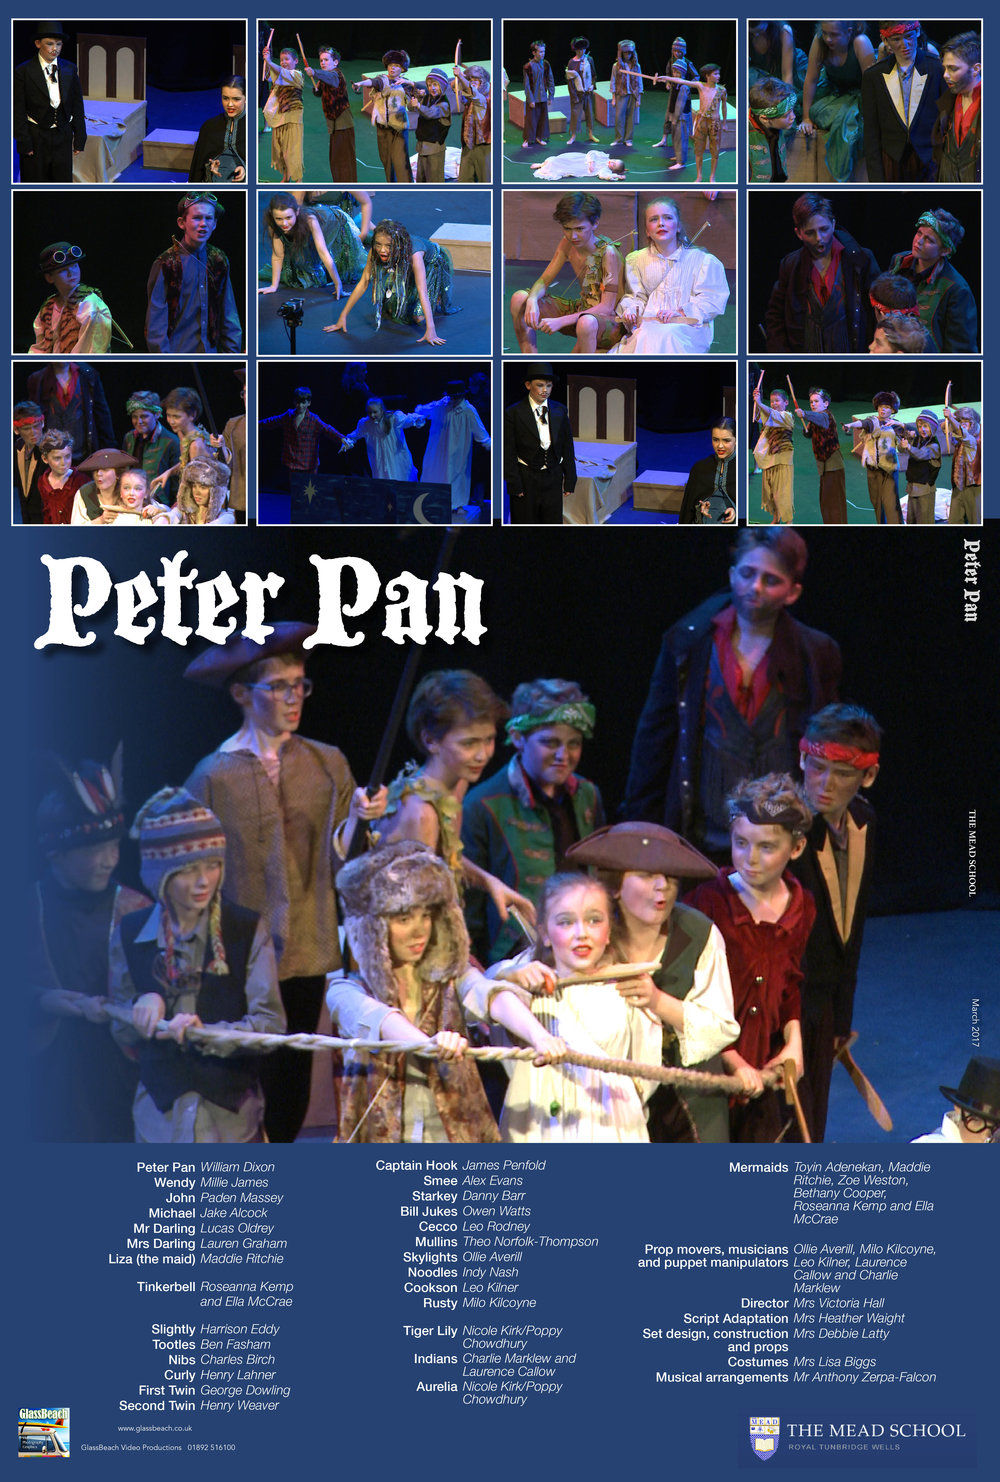 PeterPanPoster.jpg